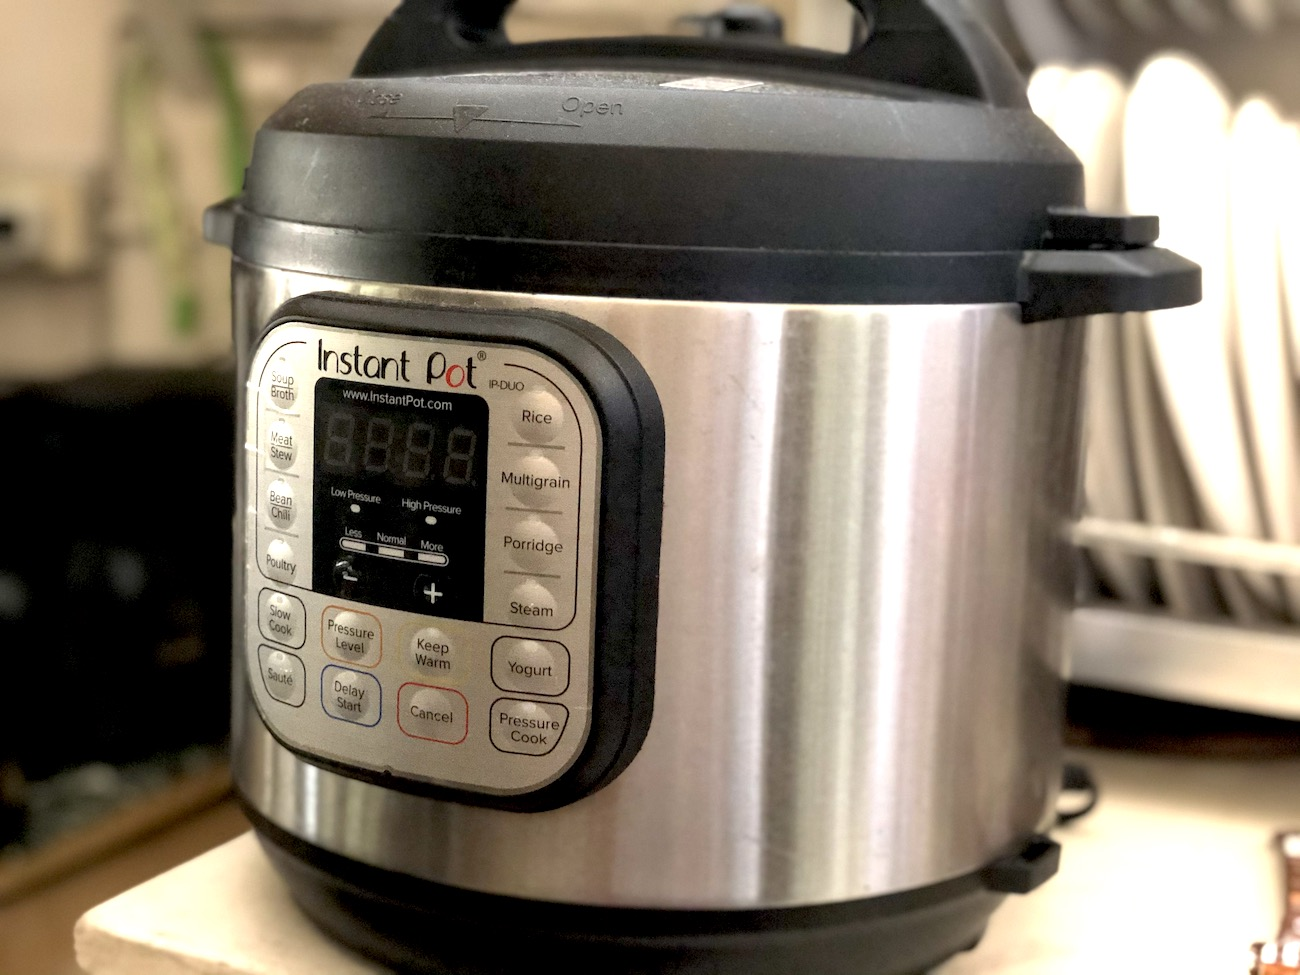 The Instant Pot Is Now In The Philippines!